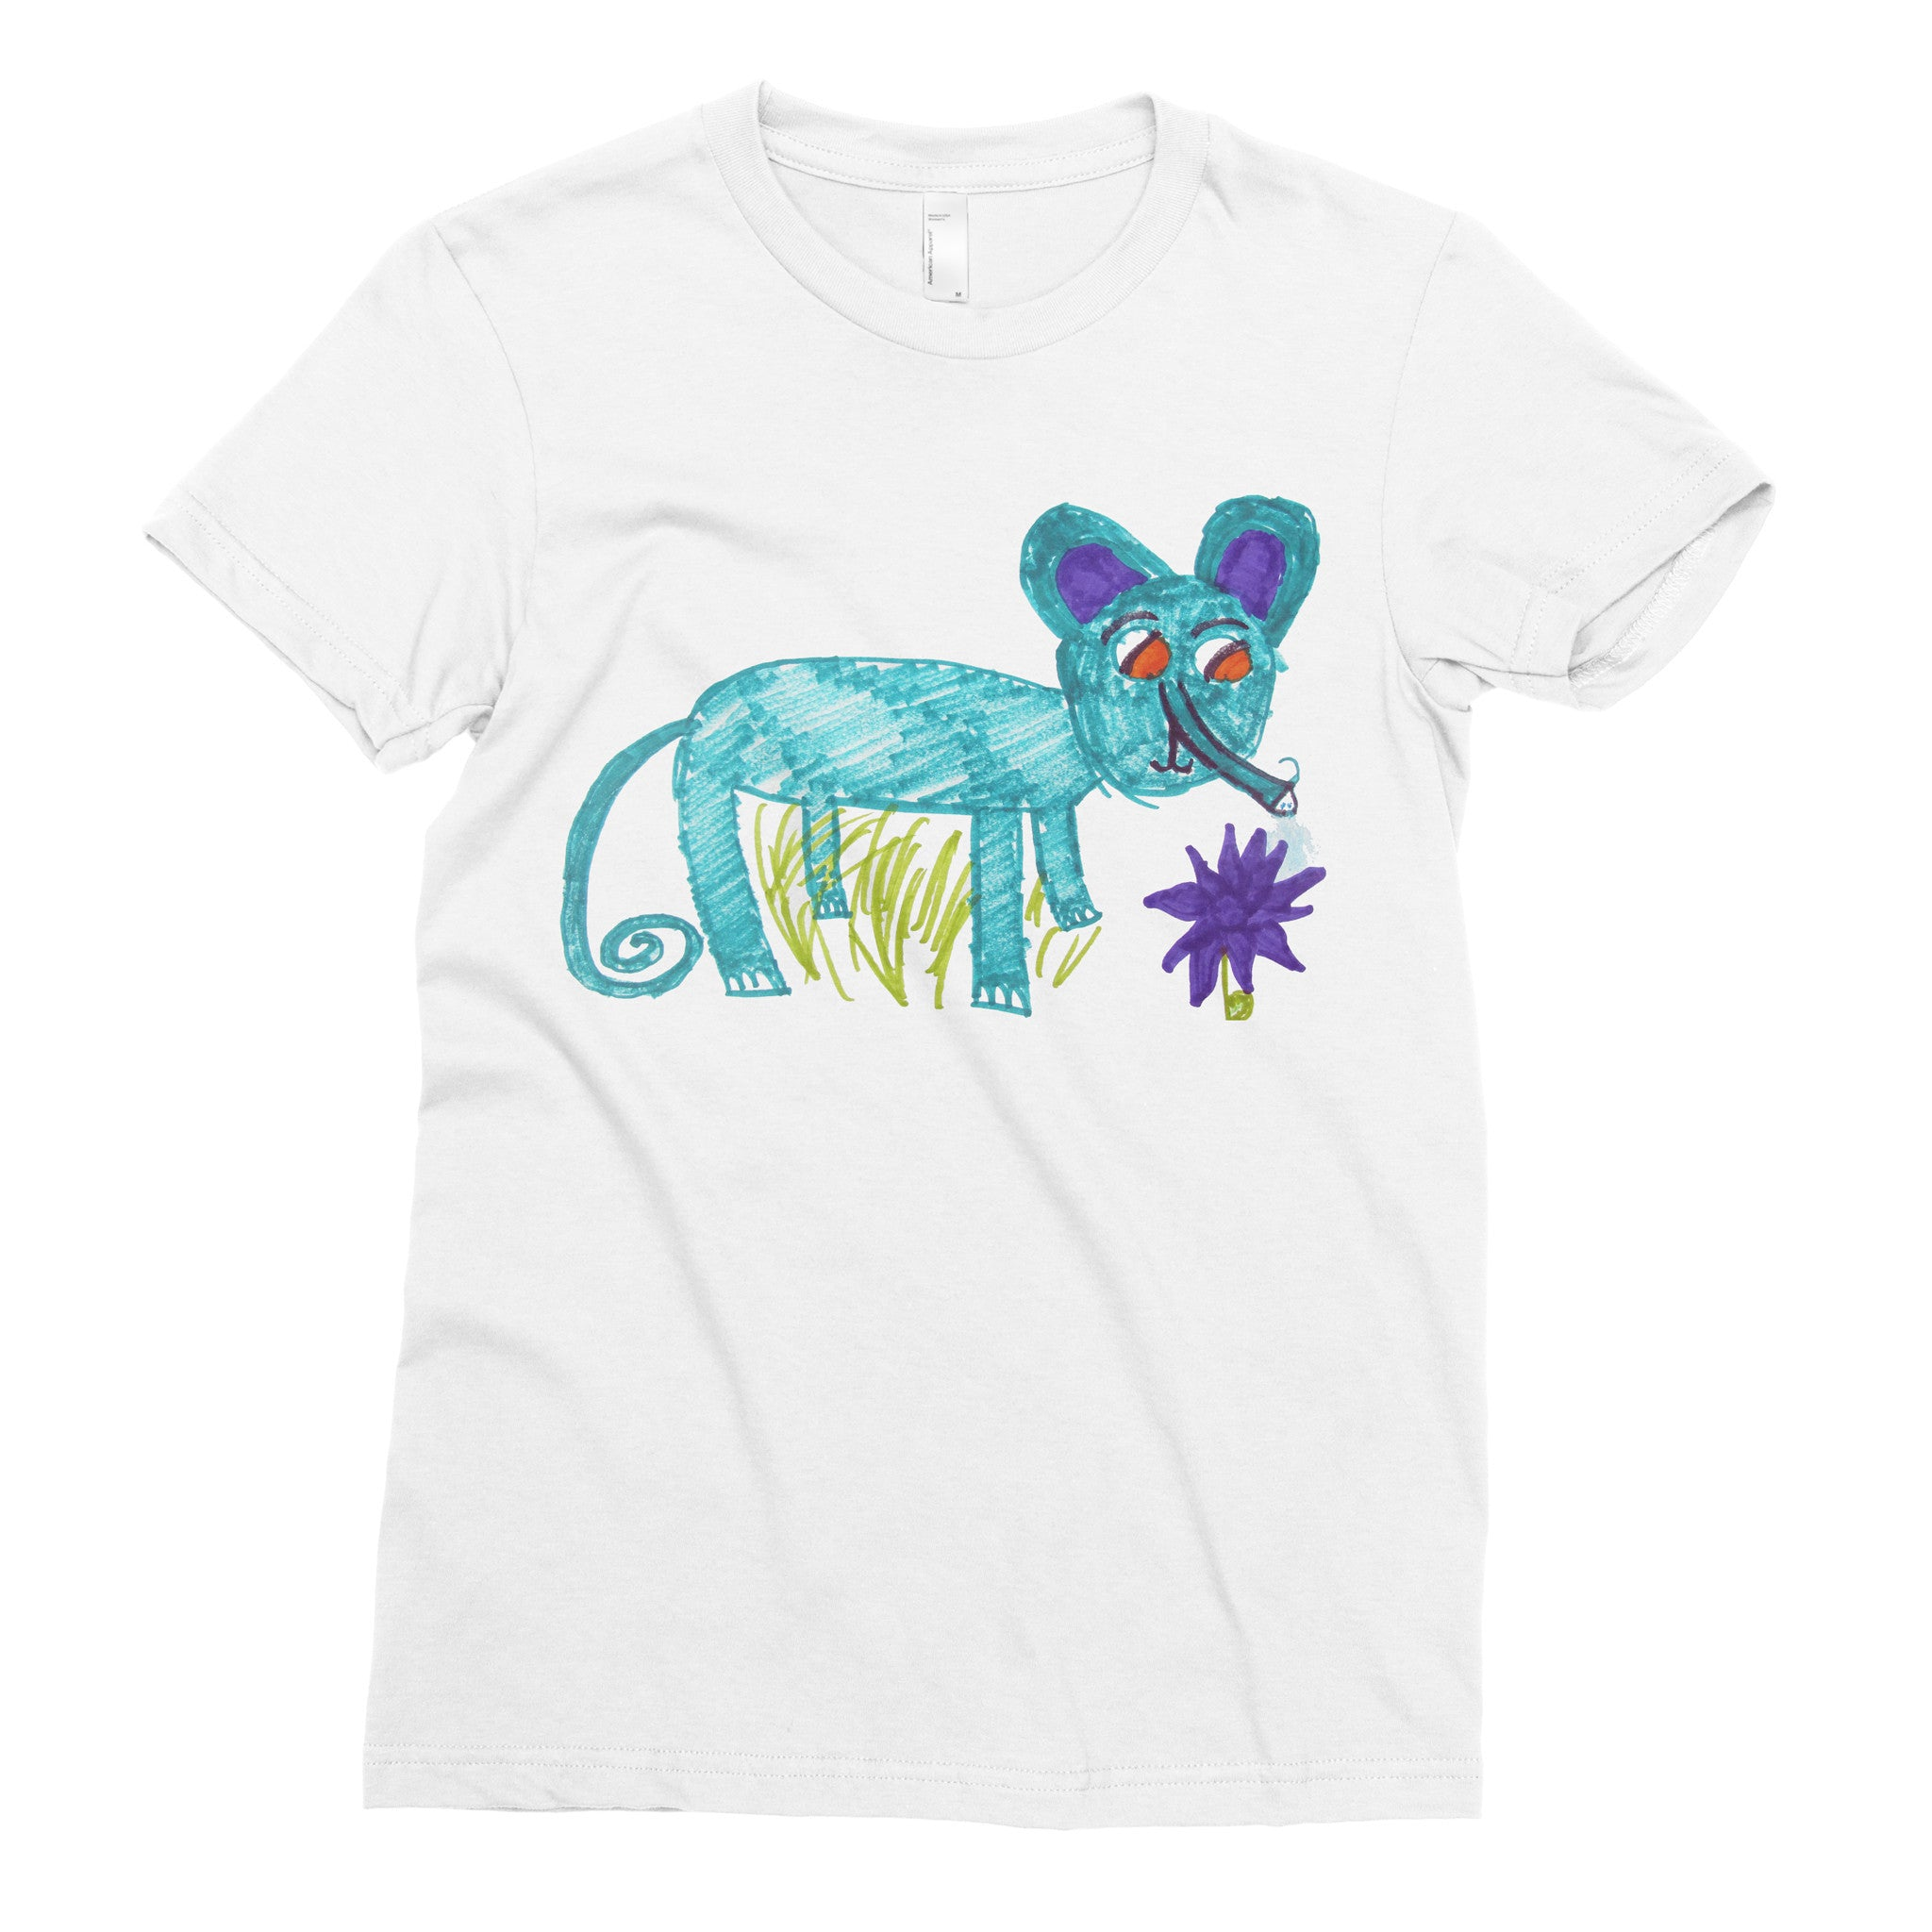 Mike the Molphant - Adult T-shirt - Rightside Shirts